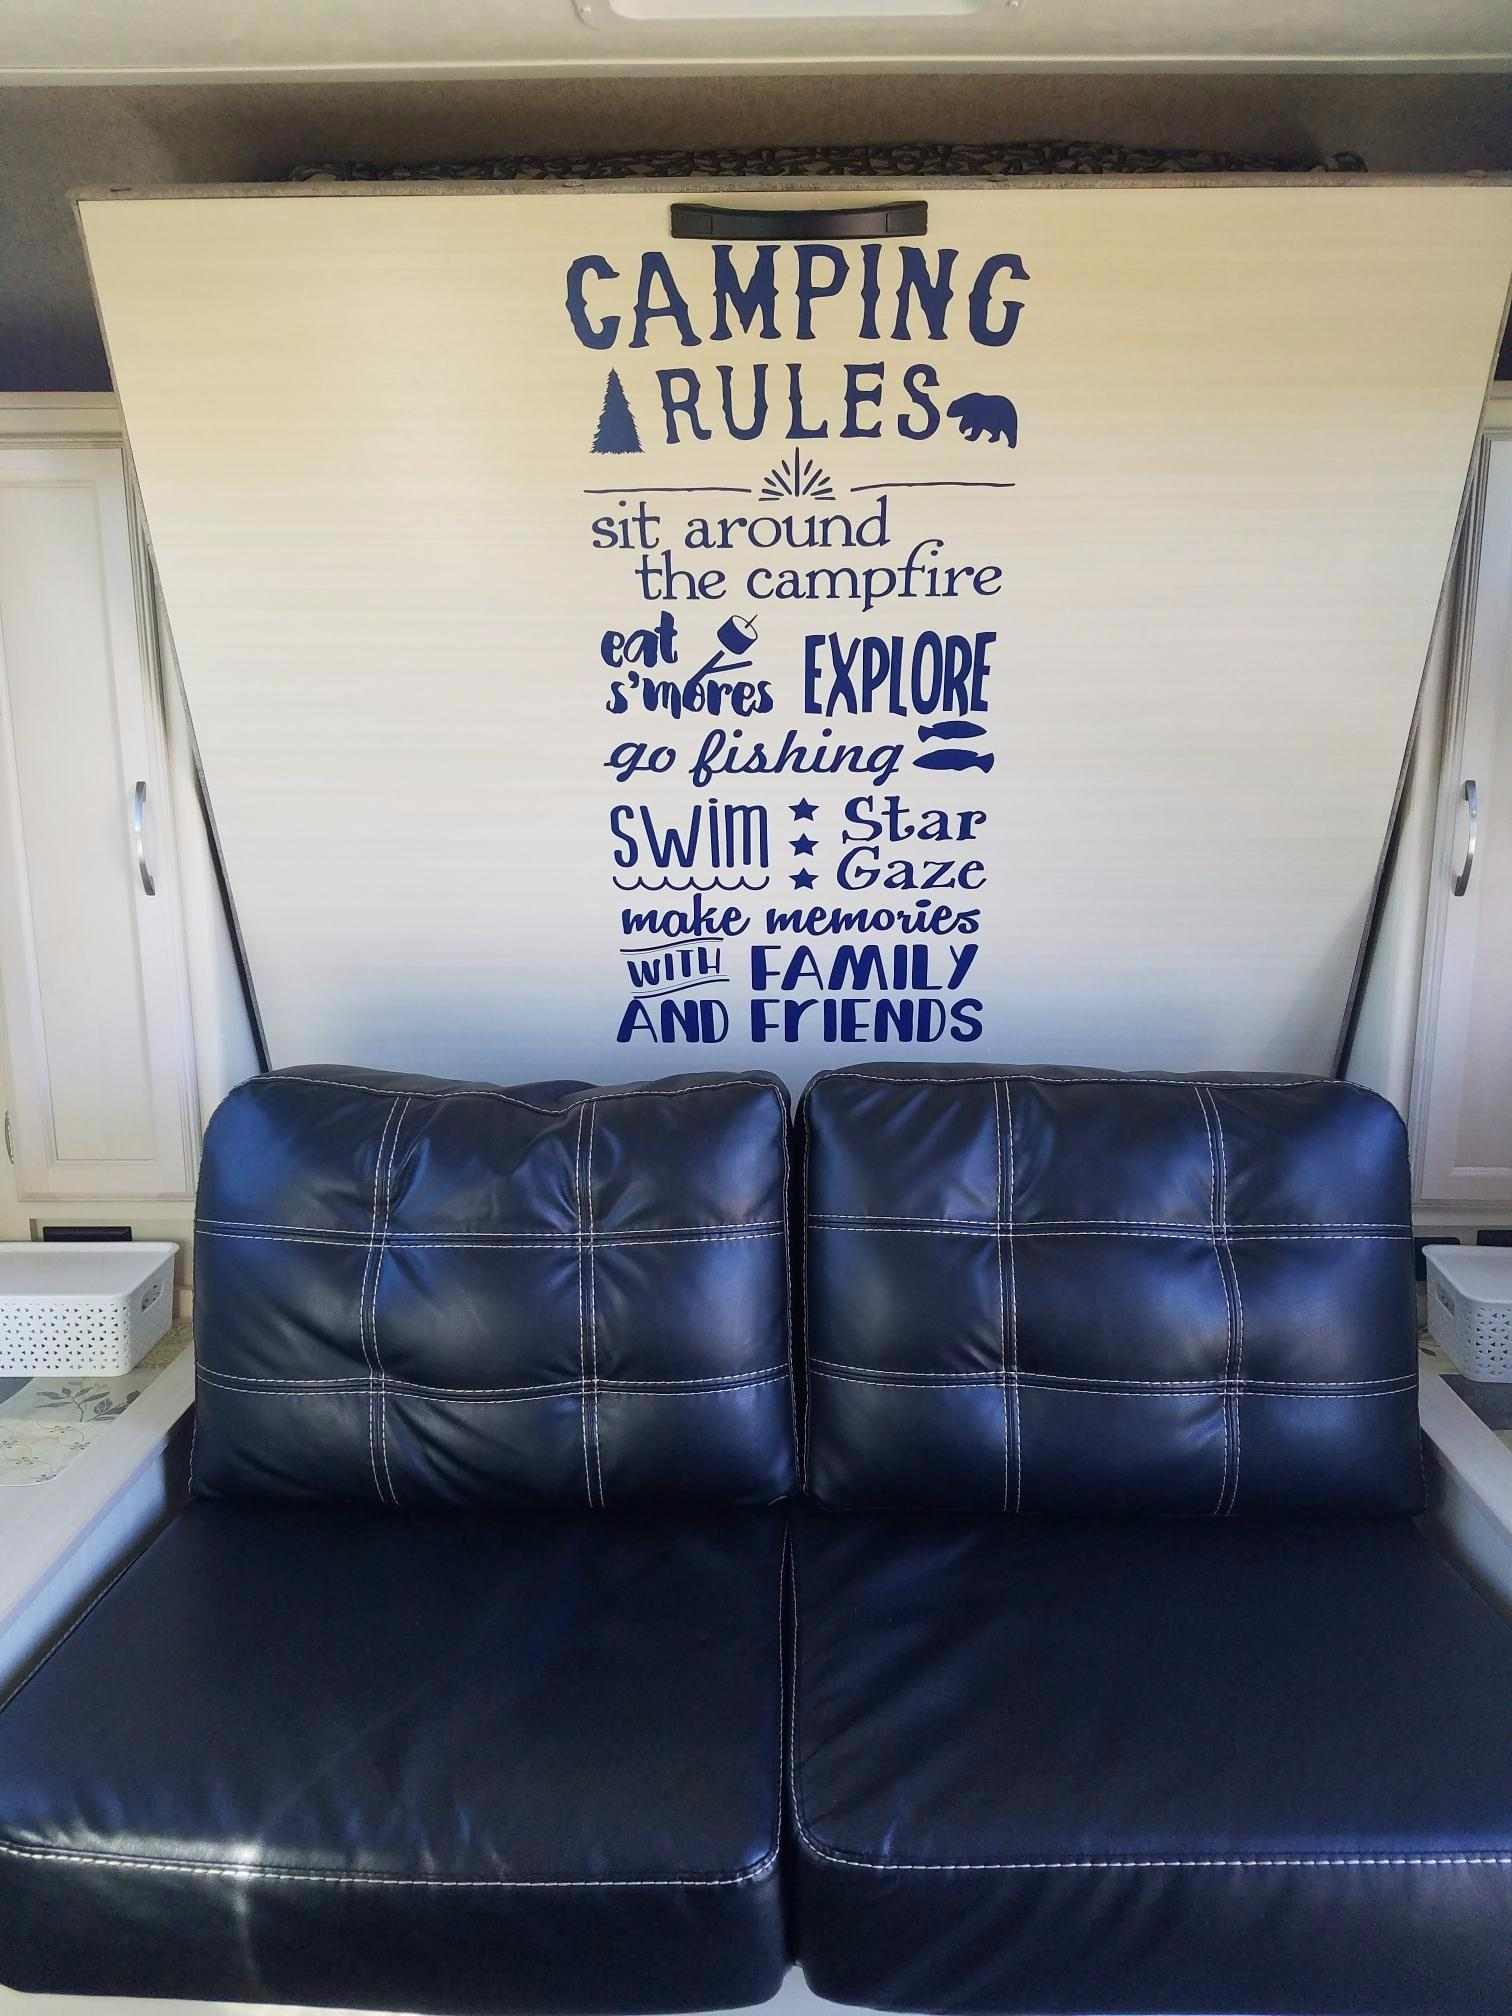 wd636-camping-rules-deep-blue-travel-trailer.jpeg